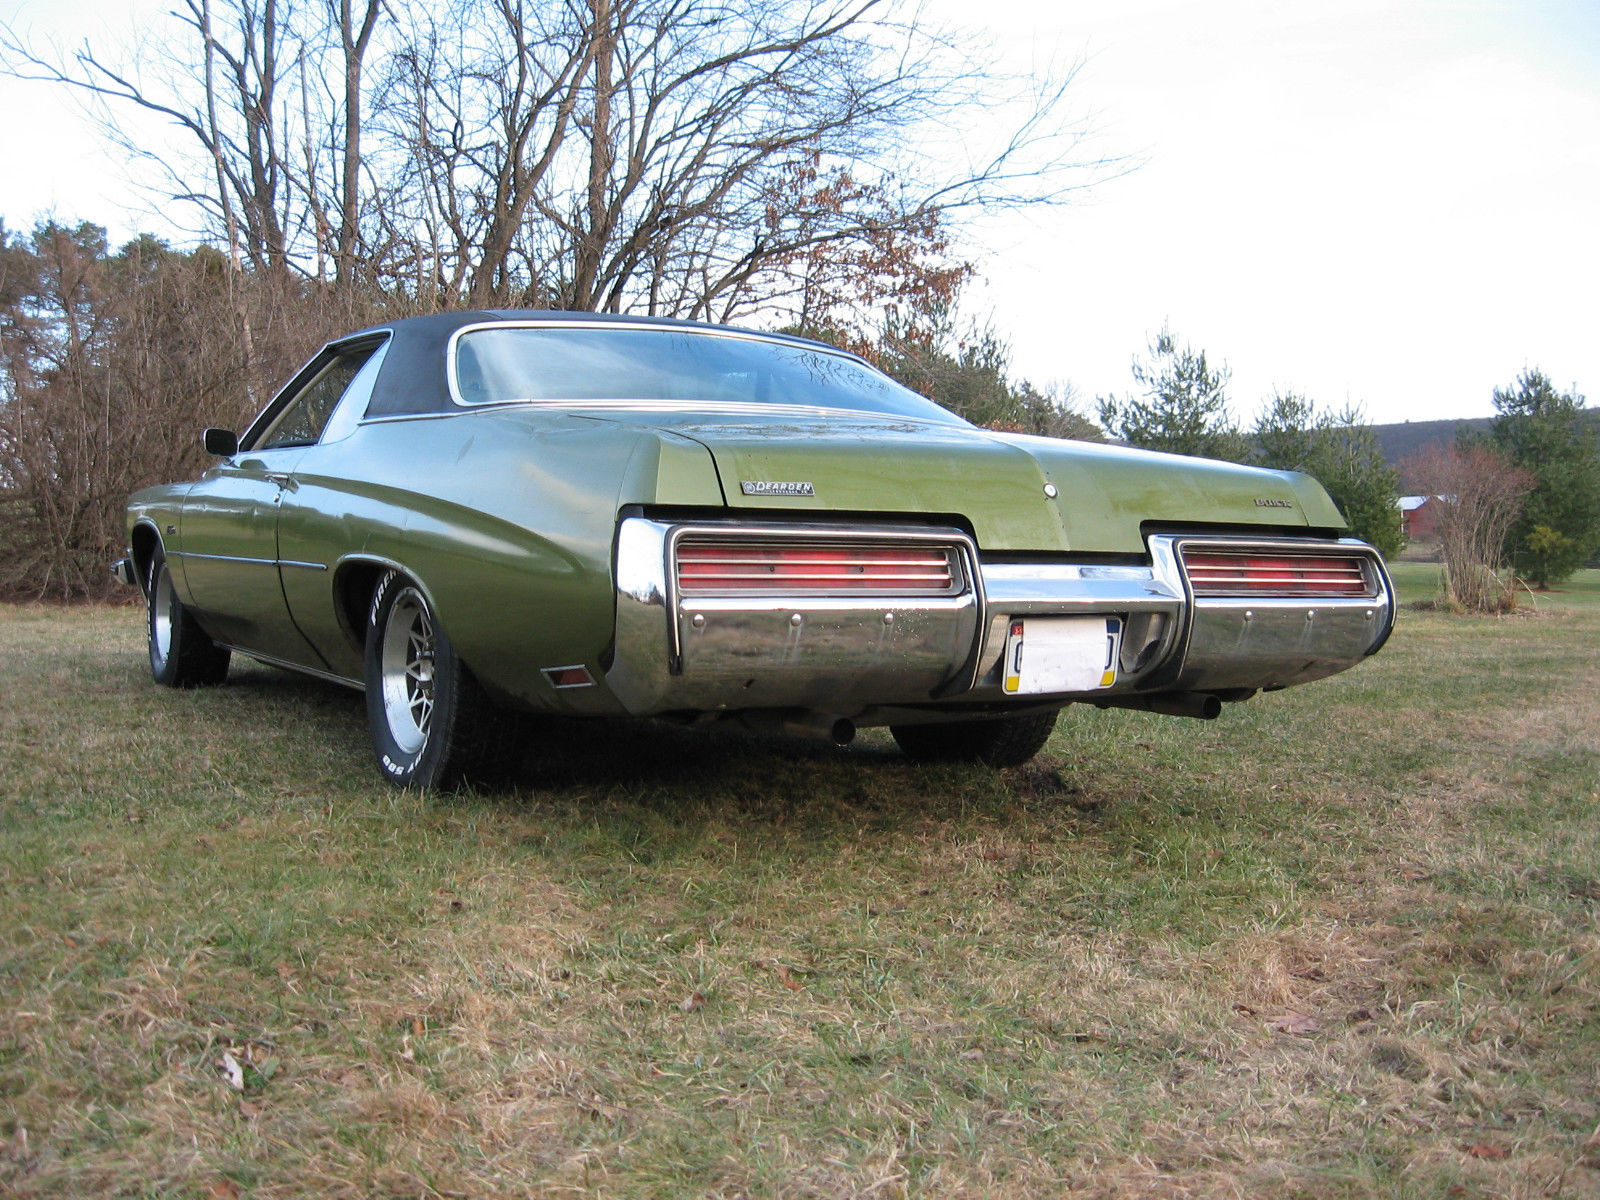 Buick Lesabre Dr Hardtop Runs And Drives Low Budget Cruiser Bl on 1973 Buick Lesabre 2 Door Hardtop